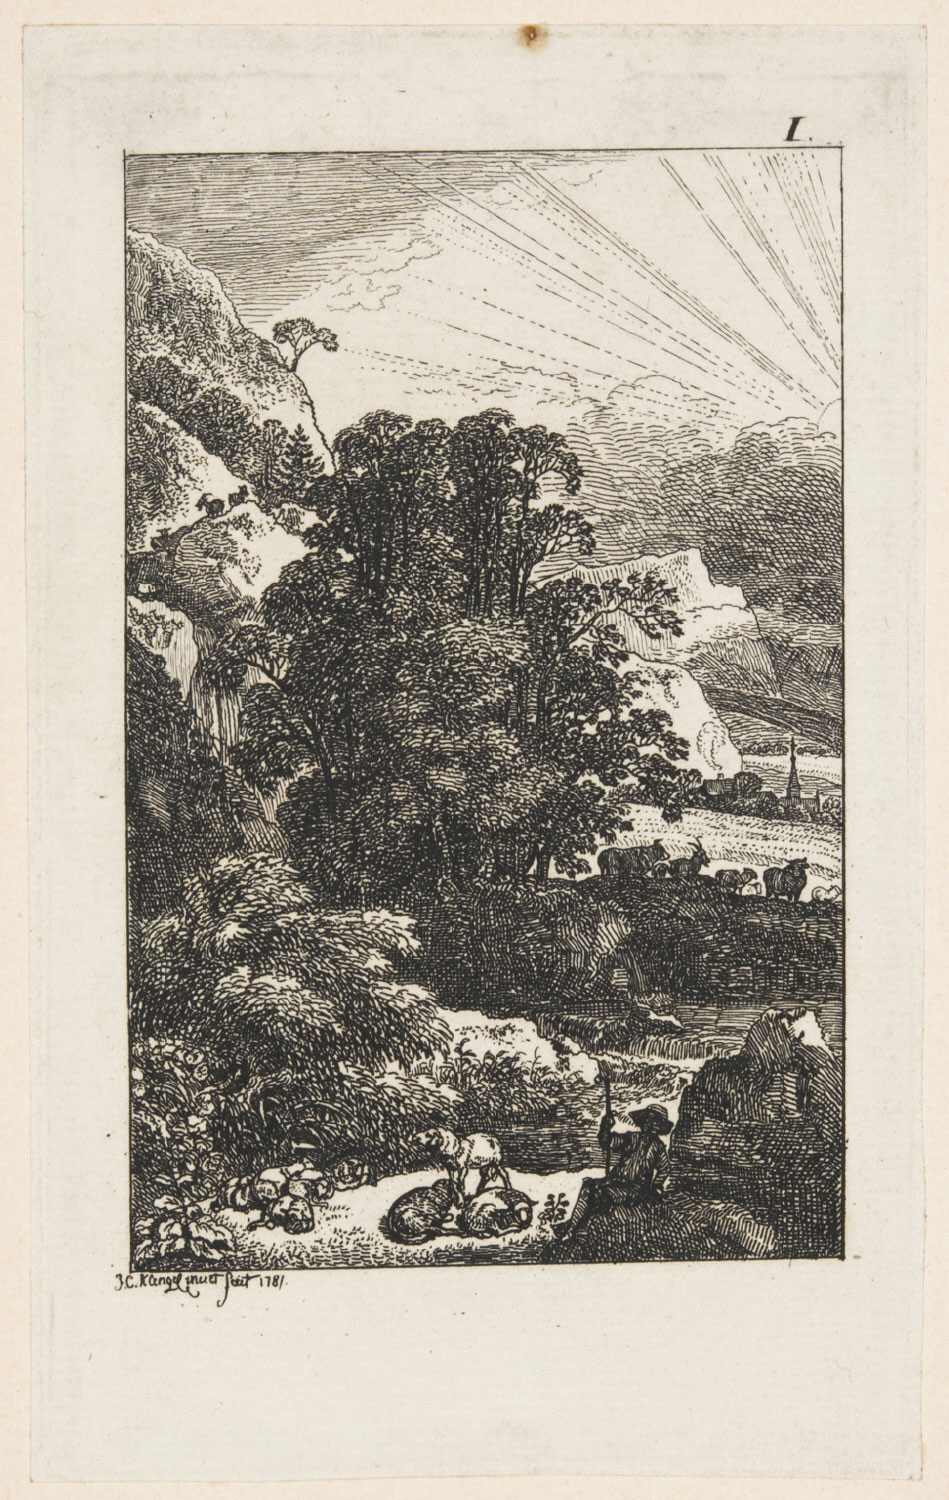 Clearing Thunderstorm in a Rocky Landscape, with a Shepherd Resting with His Flock